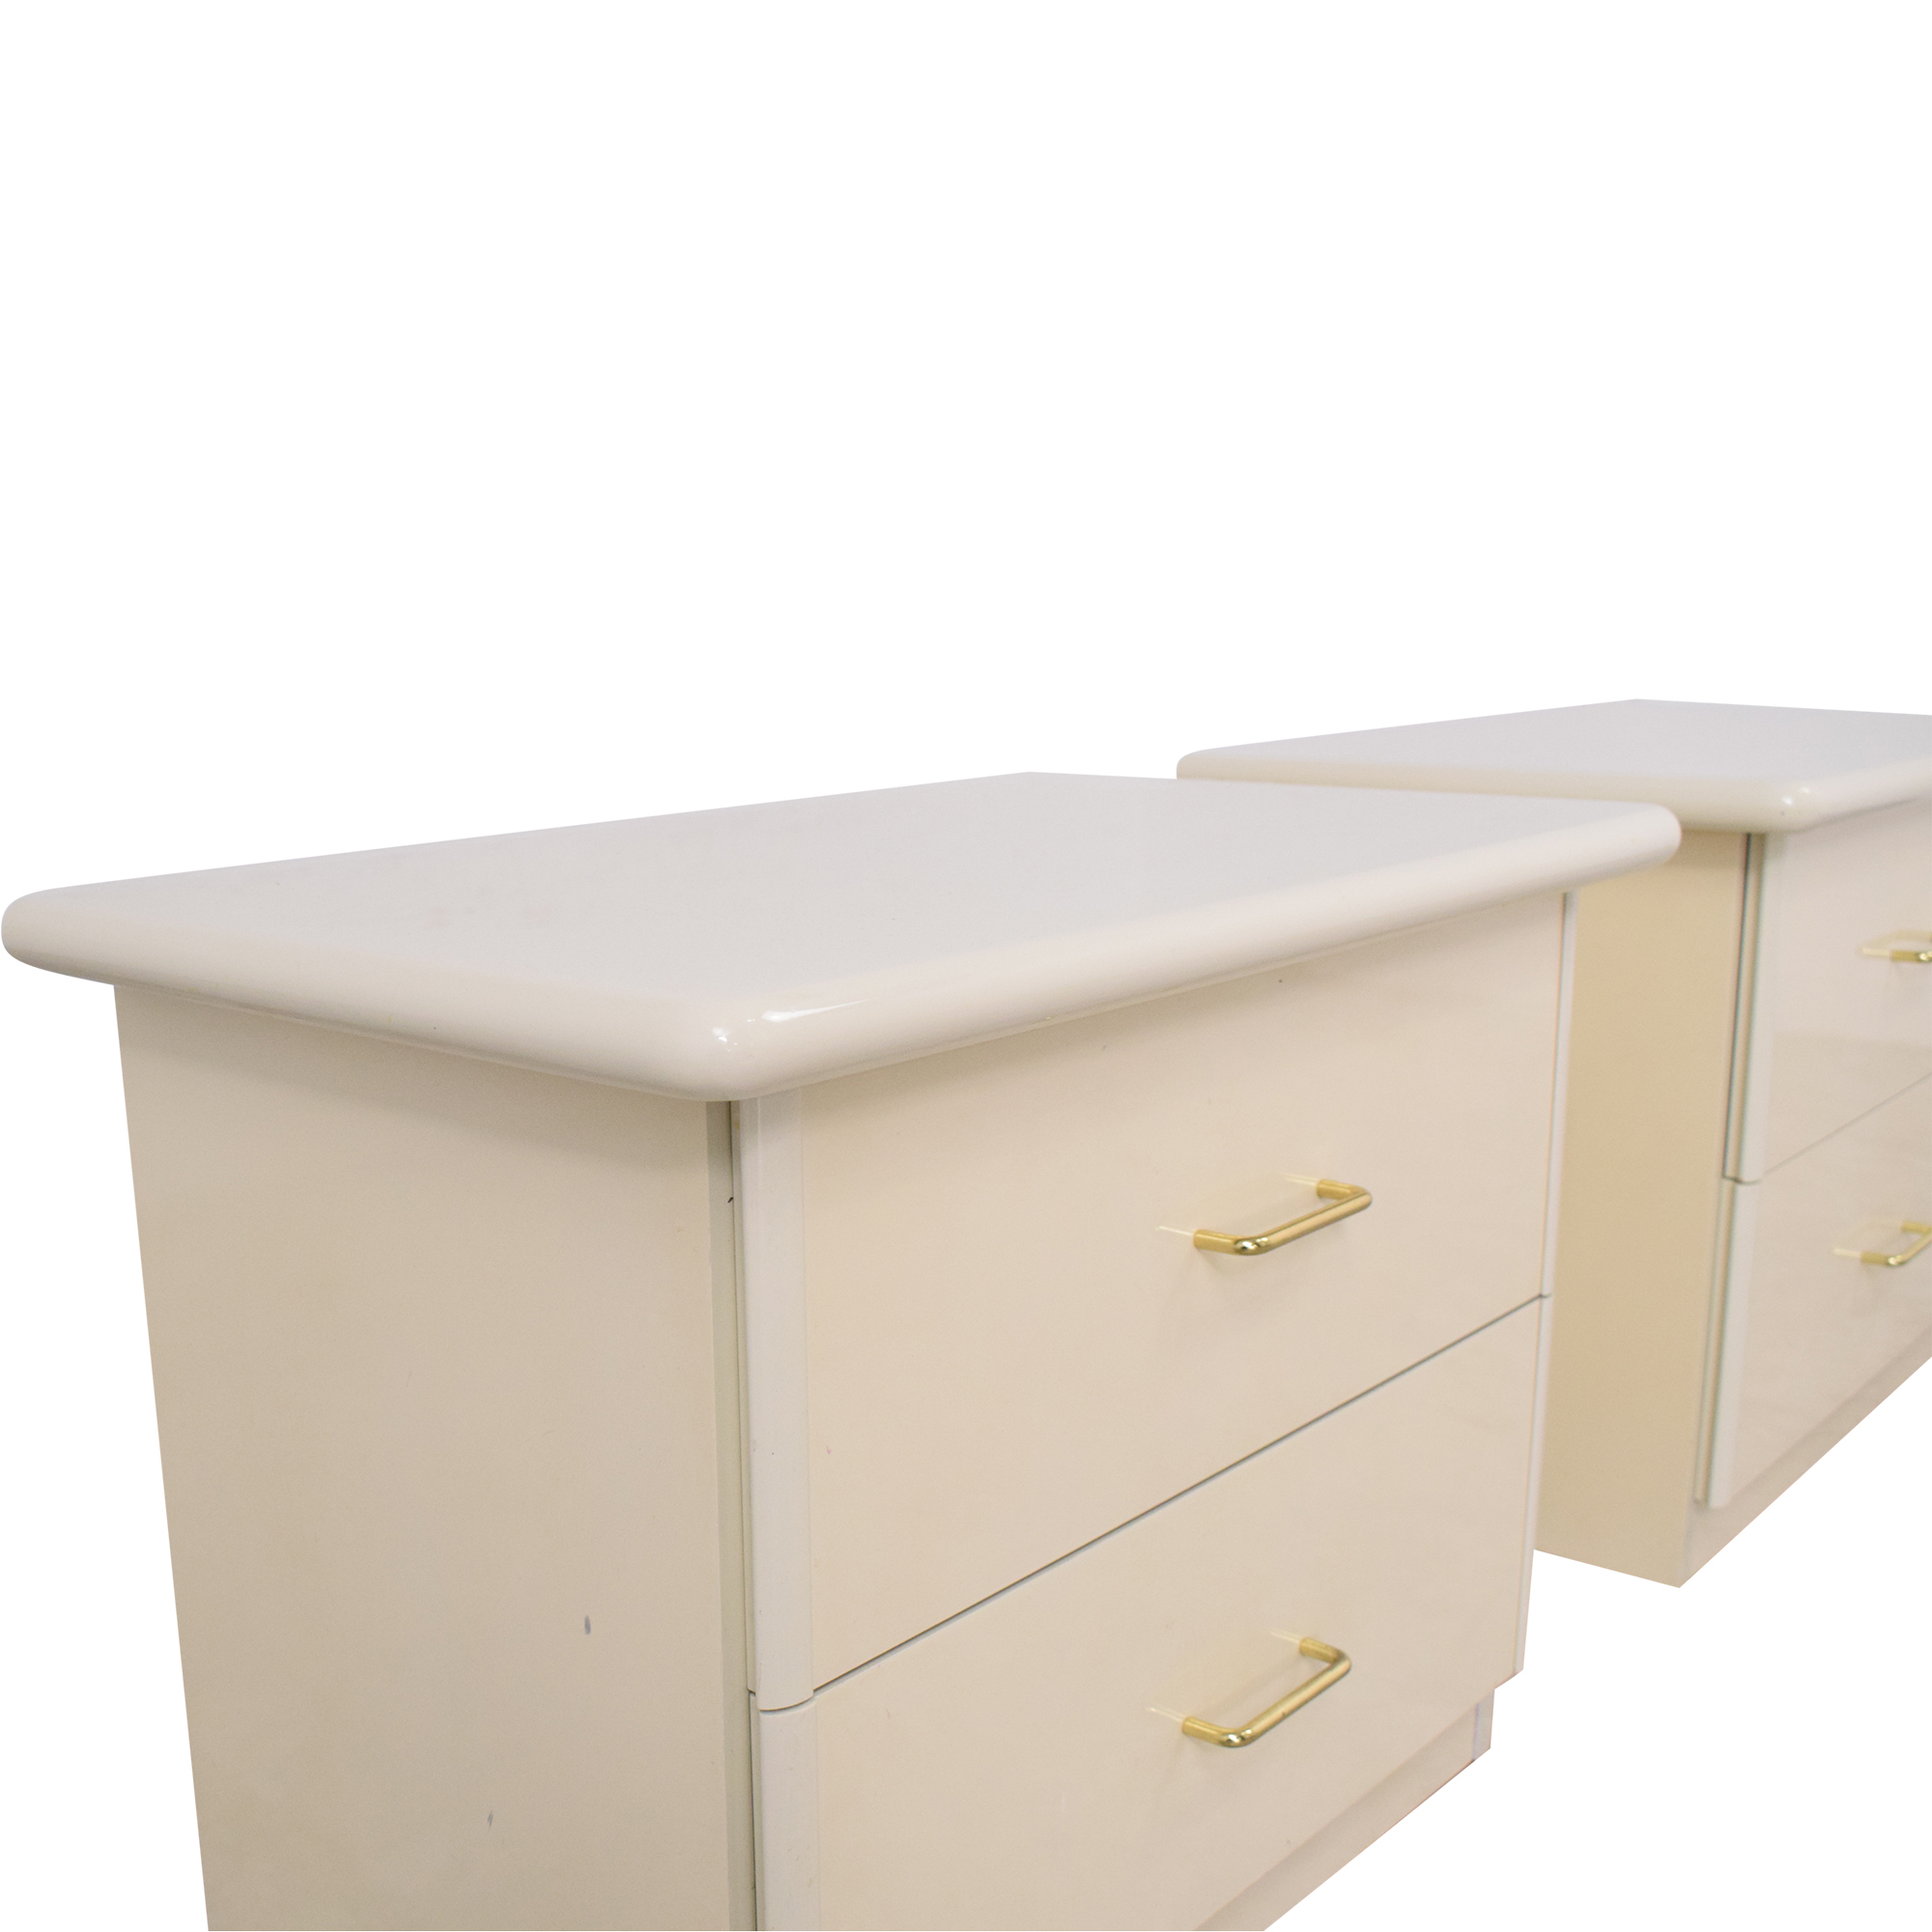 Seamans Seamans Two Drawer Nightstands coupon